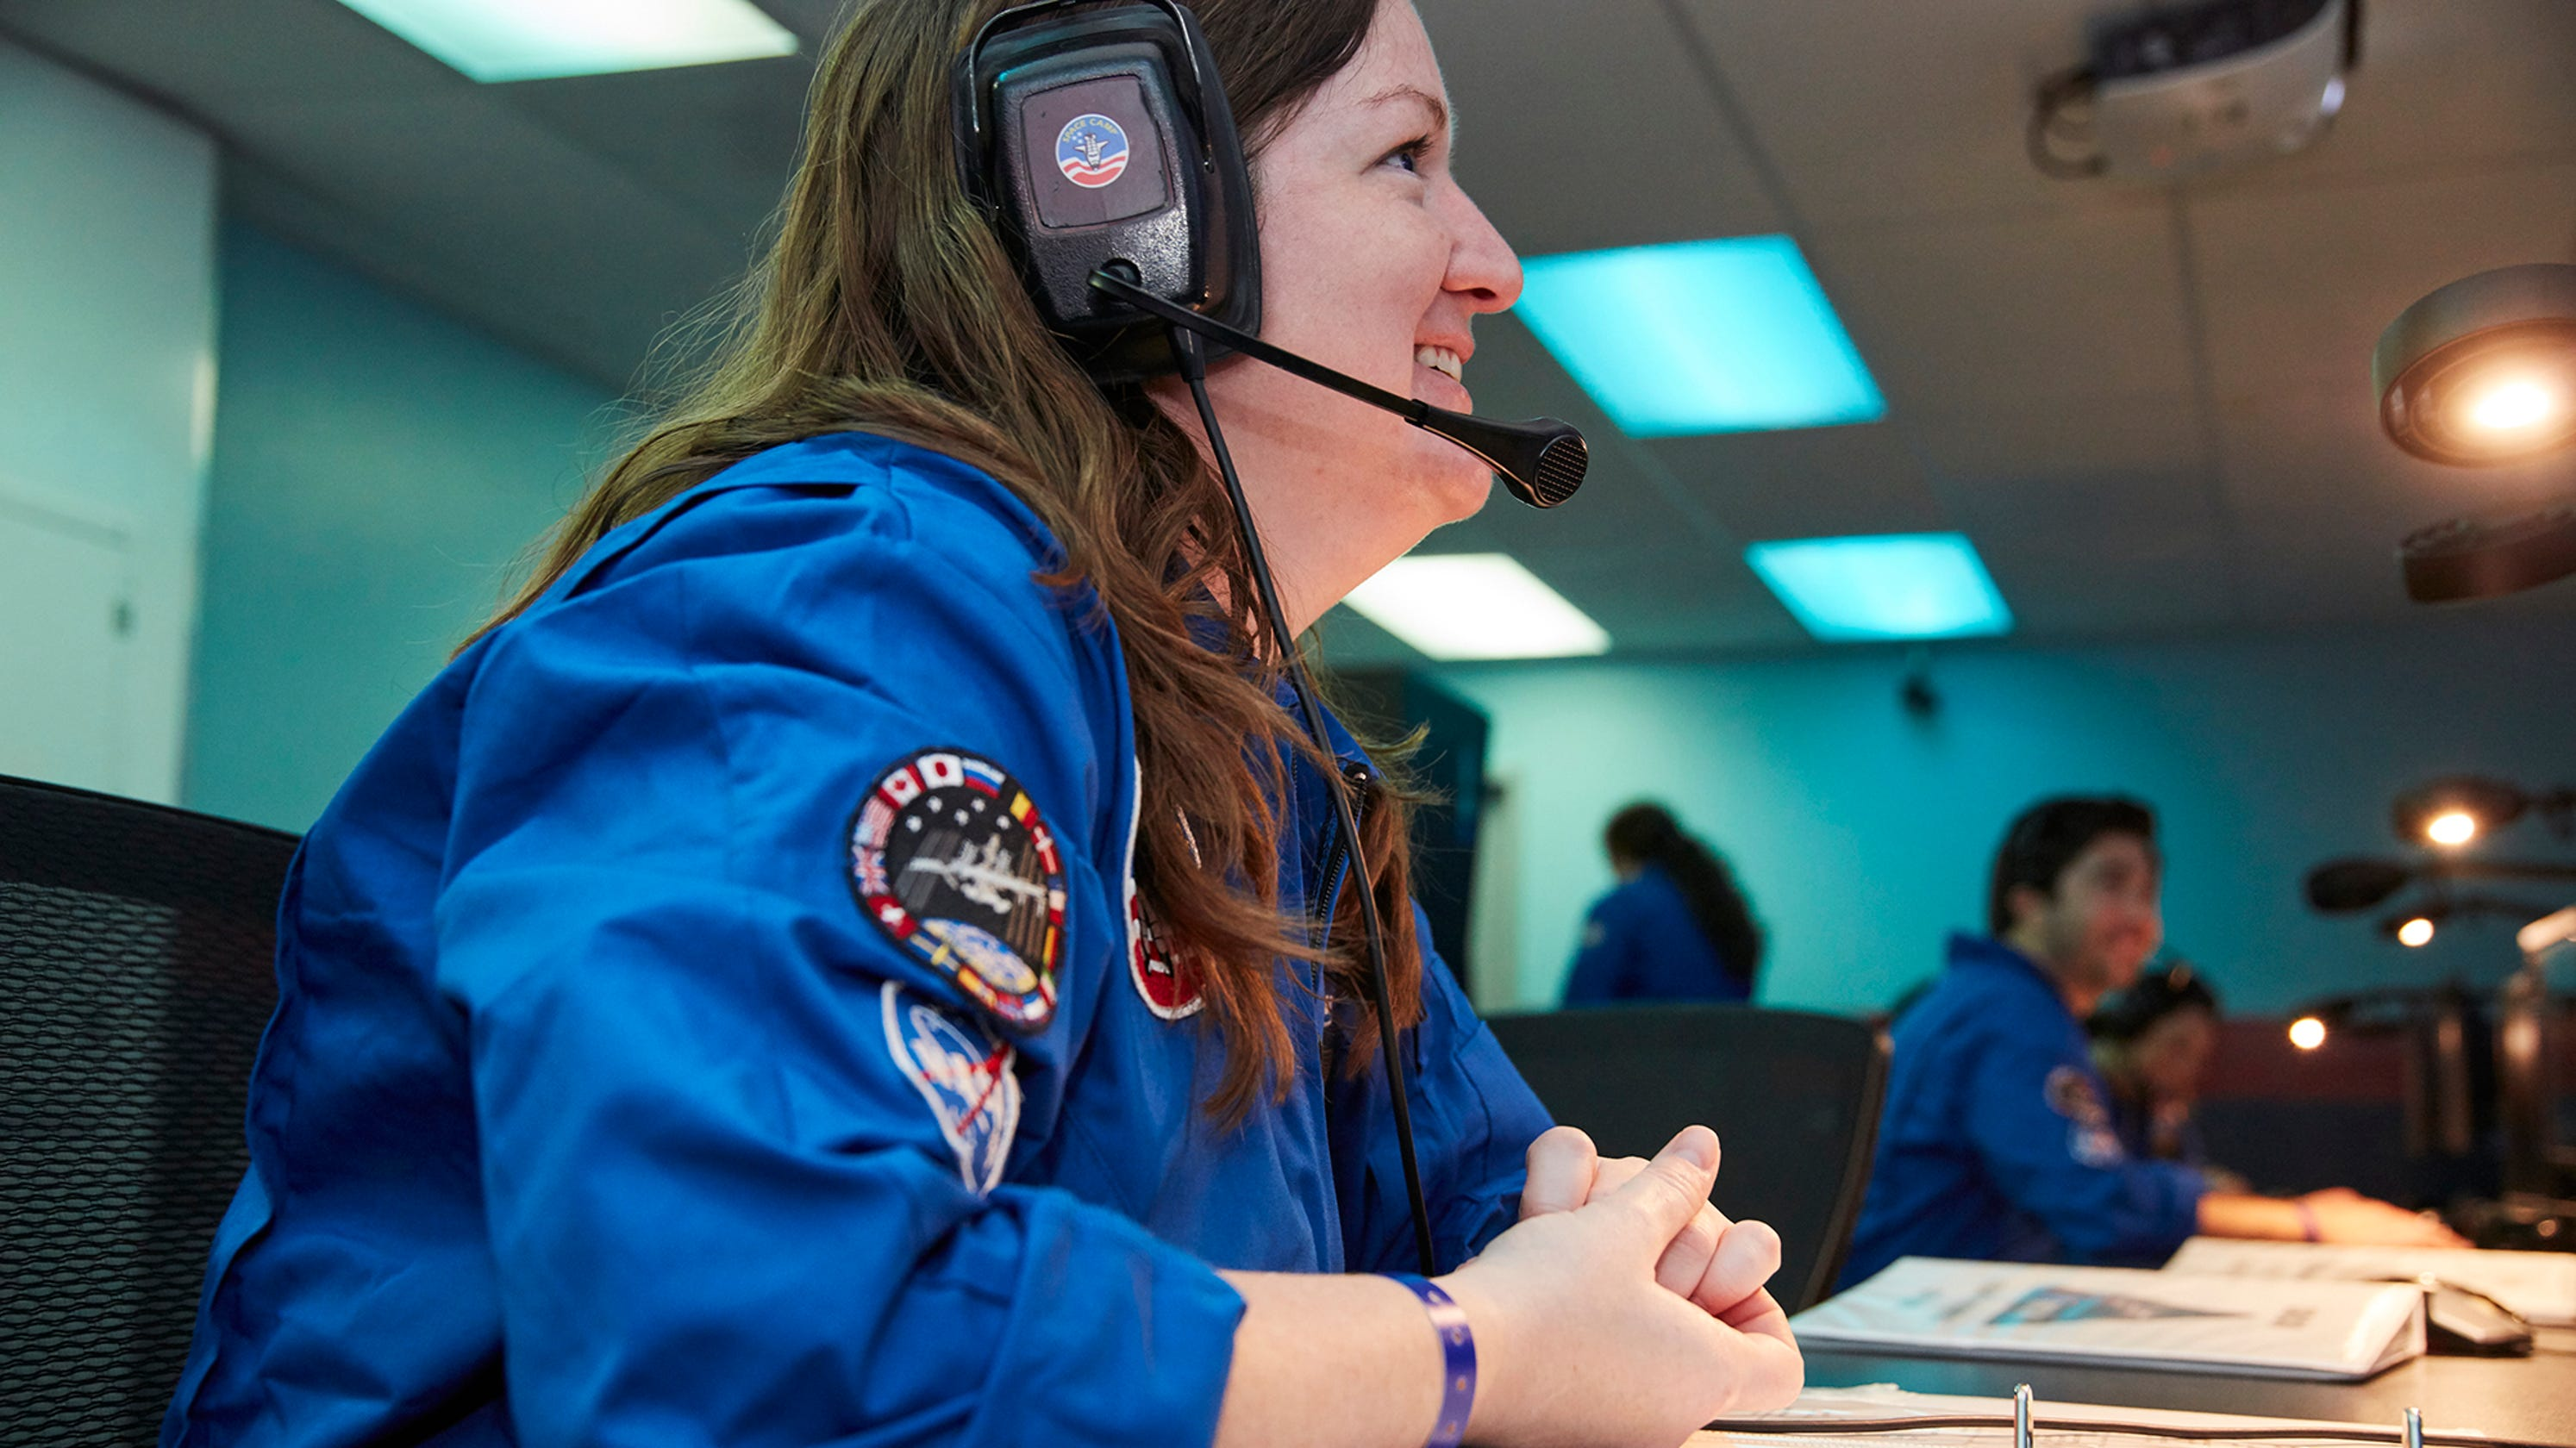 I trained to be an astronaut on a mission to Mars at Space Camp. Here's what it's like.